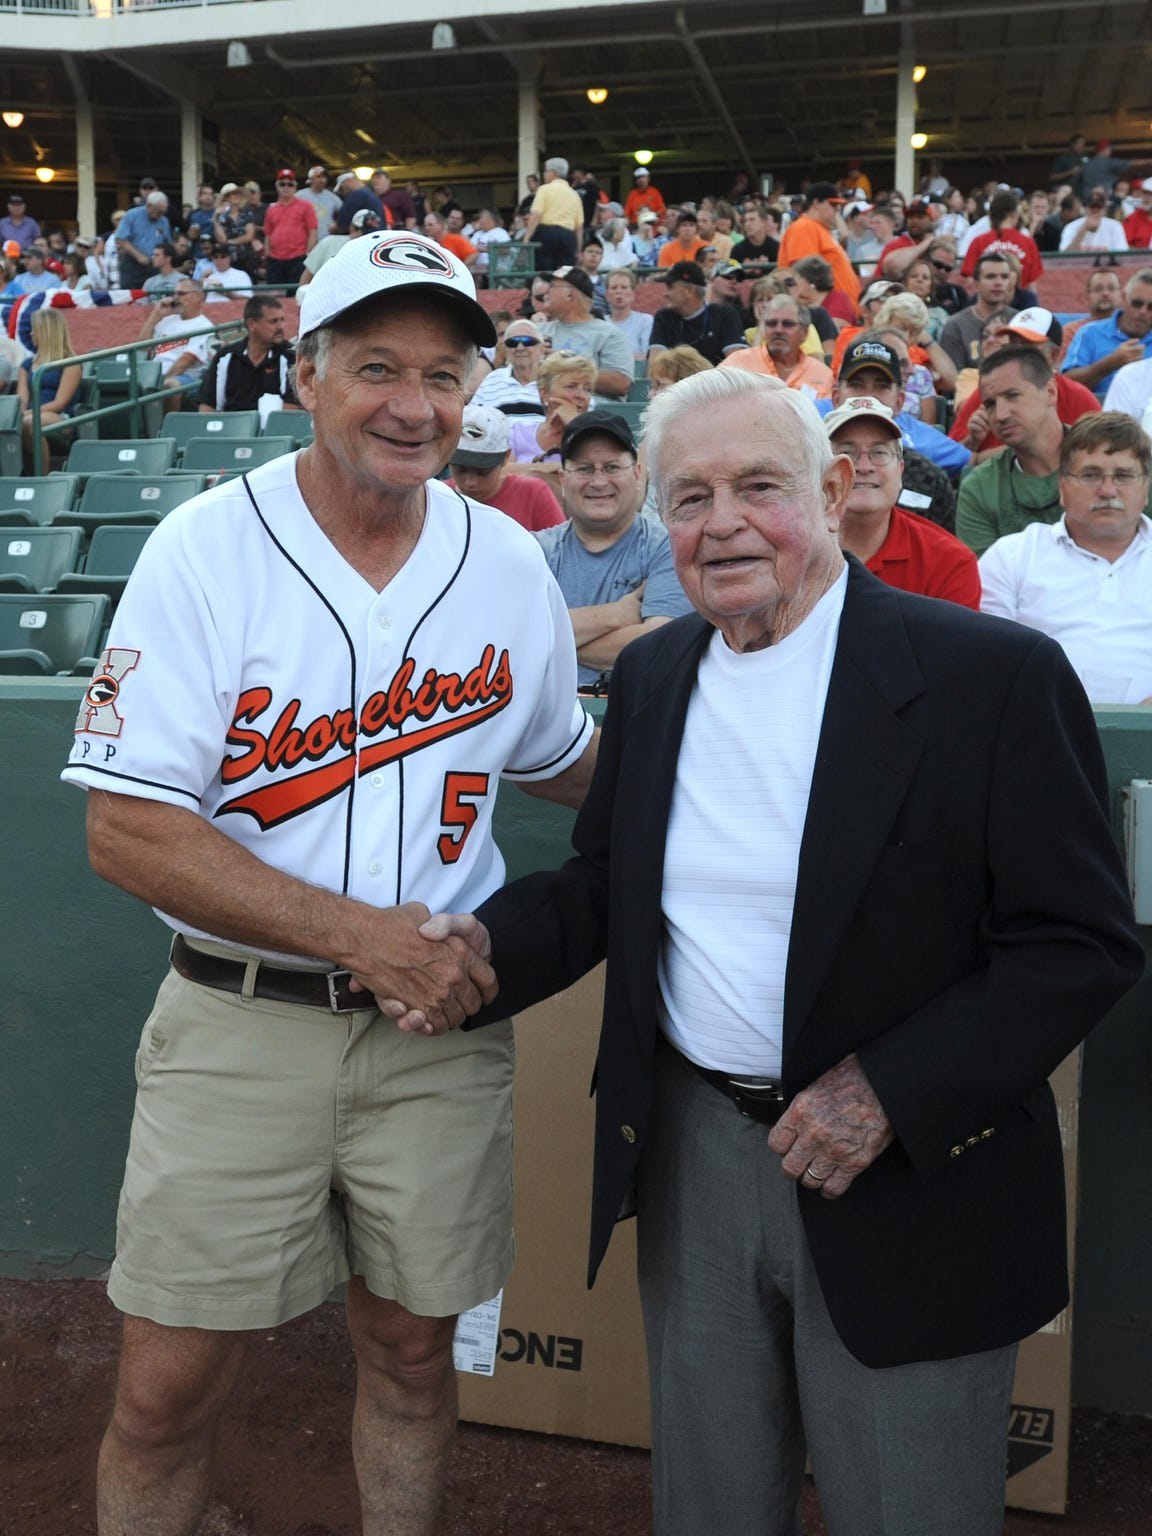 Jim Perdue and former Orioles Manager Earl Weaver pose